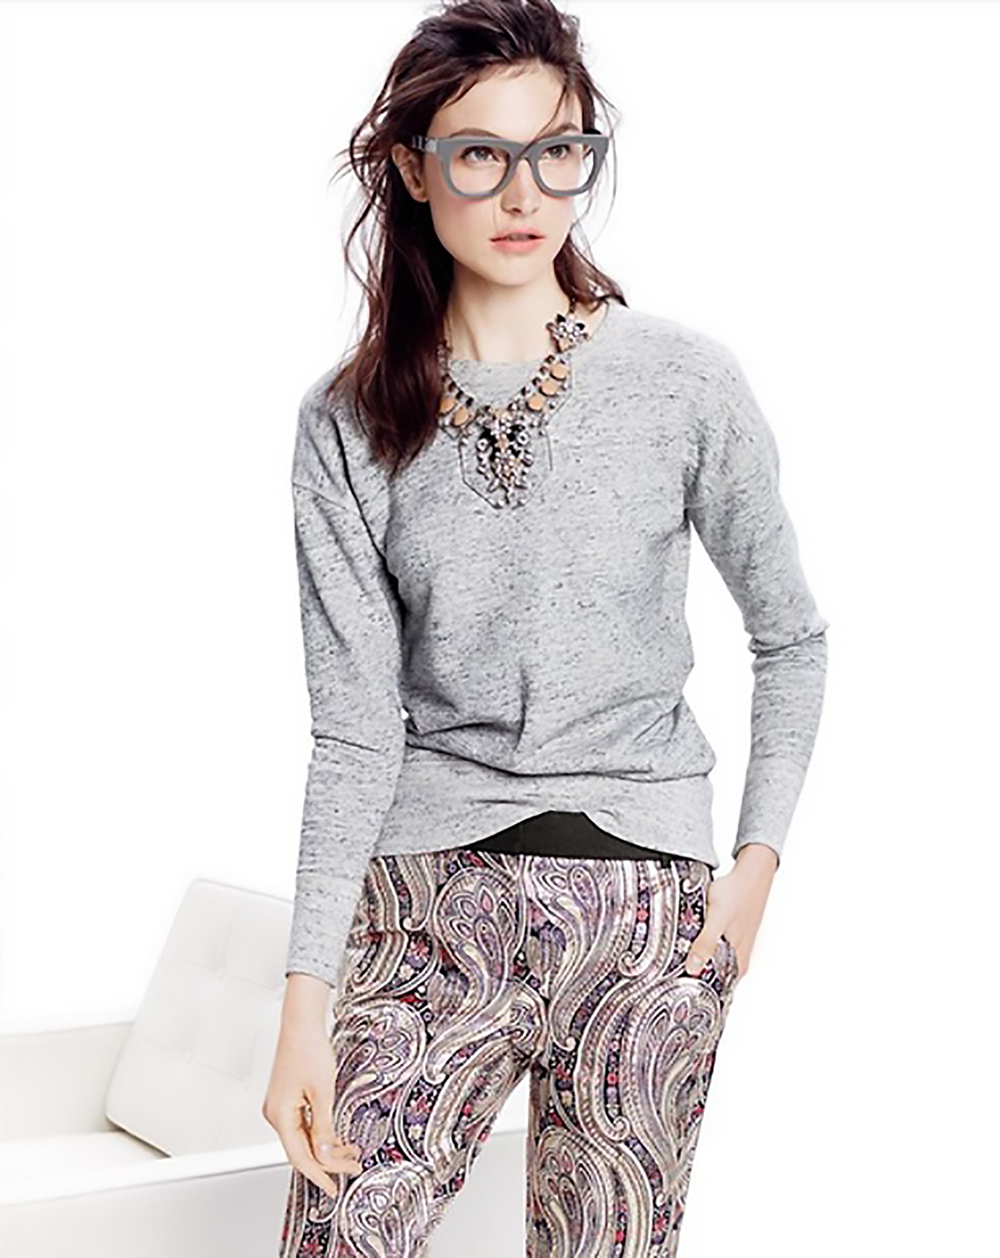 pinterest j crew november style guide glasses 1500.jpg